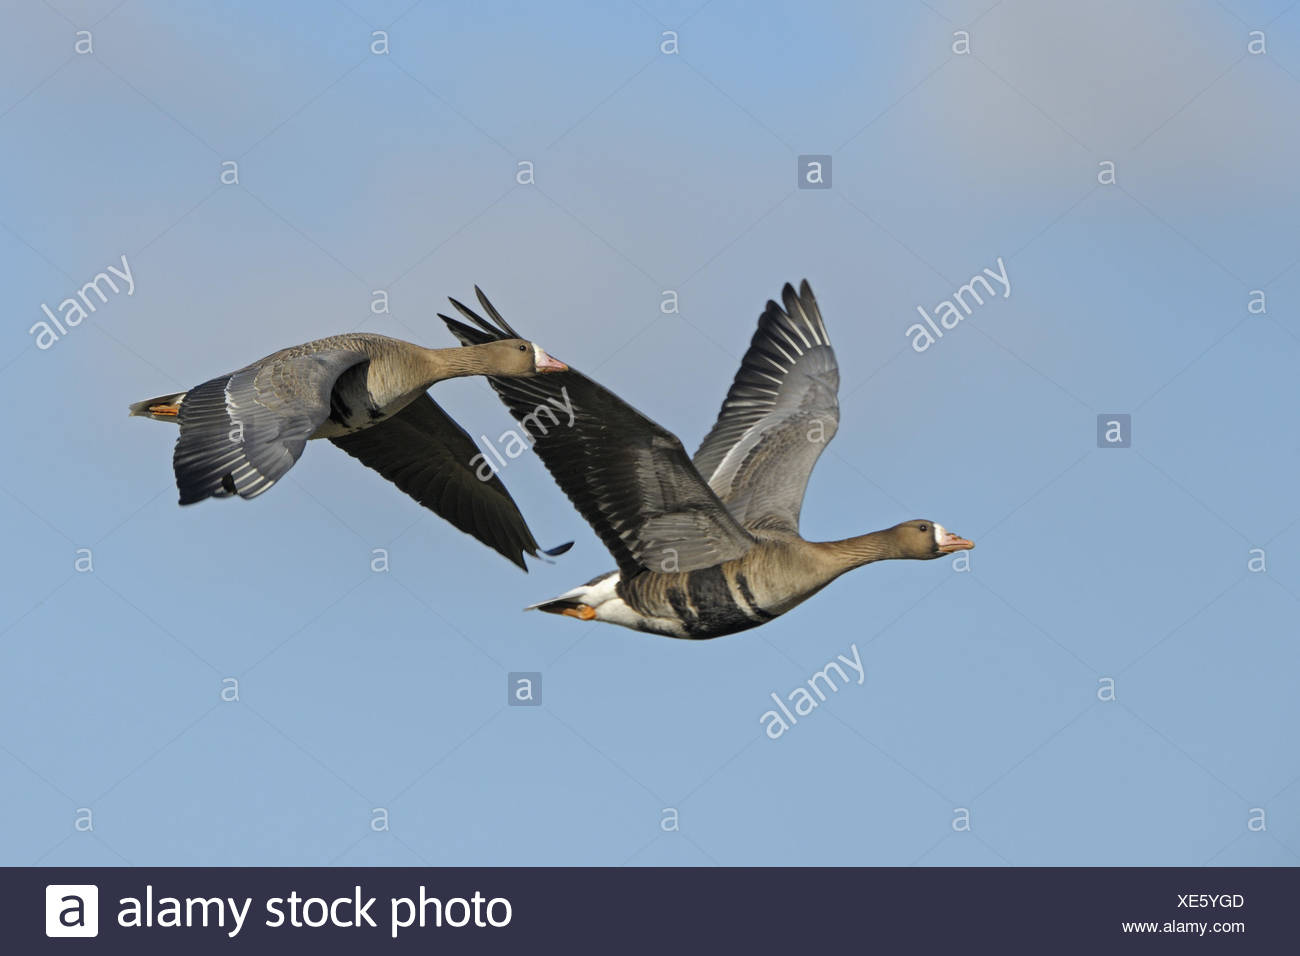 Blässgänse in the flight, the Lower Rhine, Germany, - Stock Image